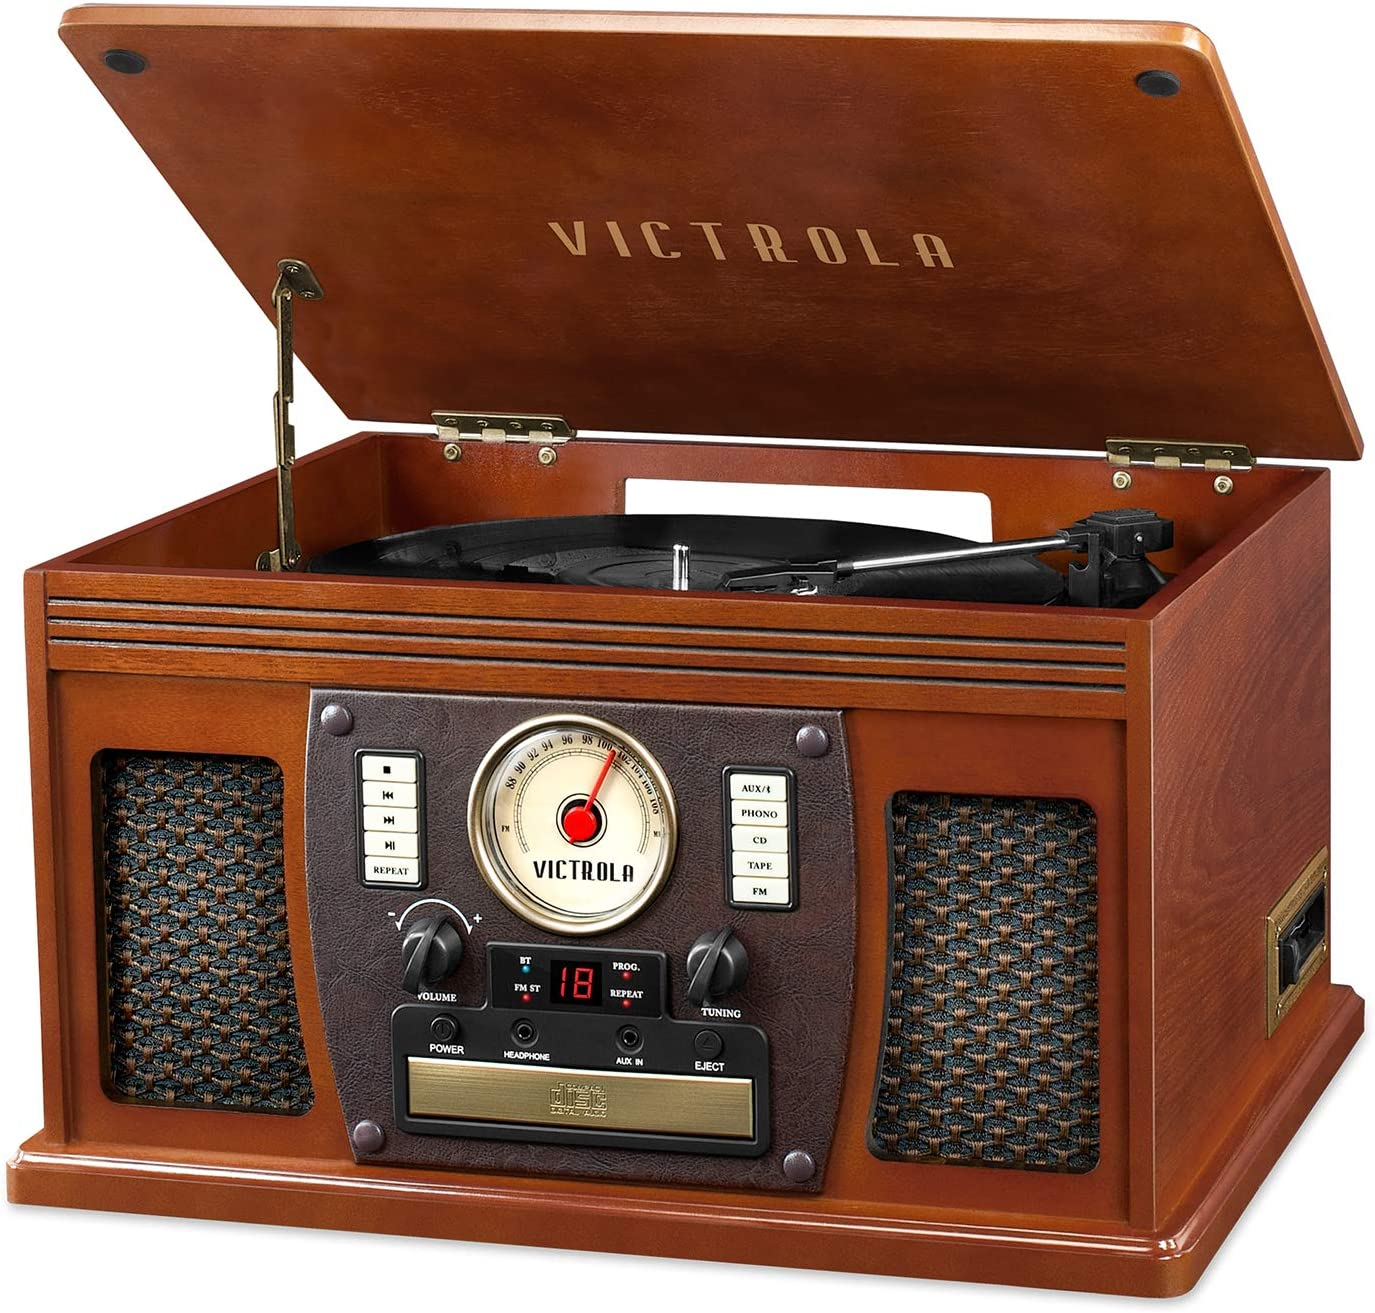 Victrola's 7-in-1 Sherwood Bluetooth Recordable Record Player with 3-Speed Turntable, CD, Cassette Player and FM Radio